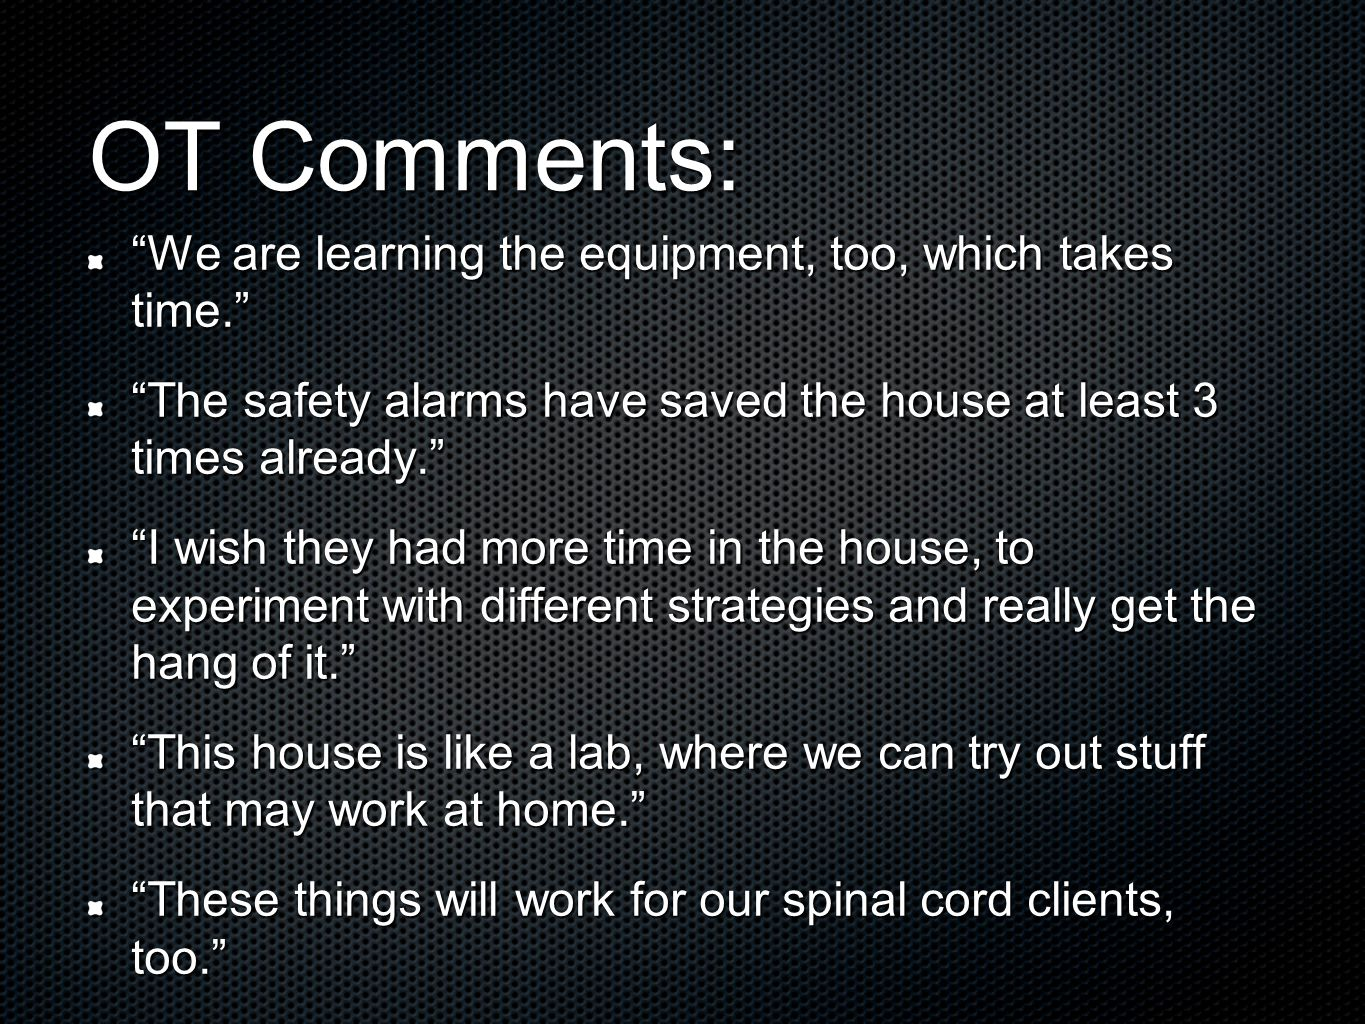 OT Comments: We are learning the equipment, too, which takes time. The safety alarms have saved the house at least 3 times already. I wish they had mo